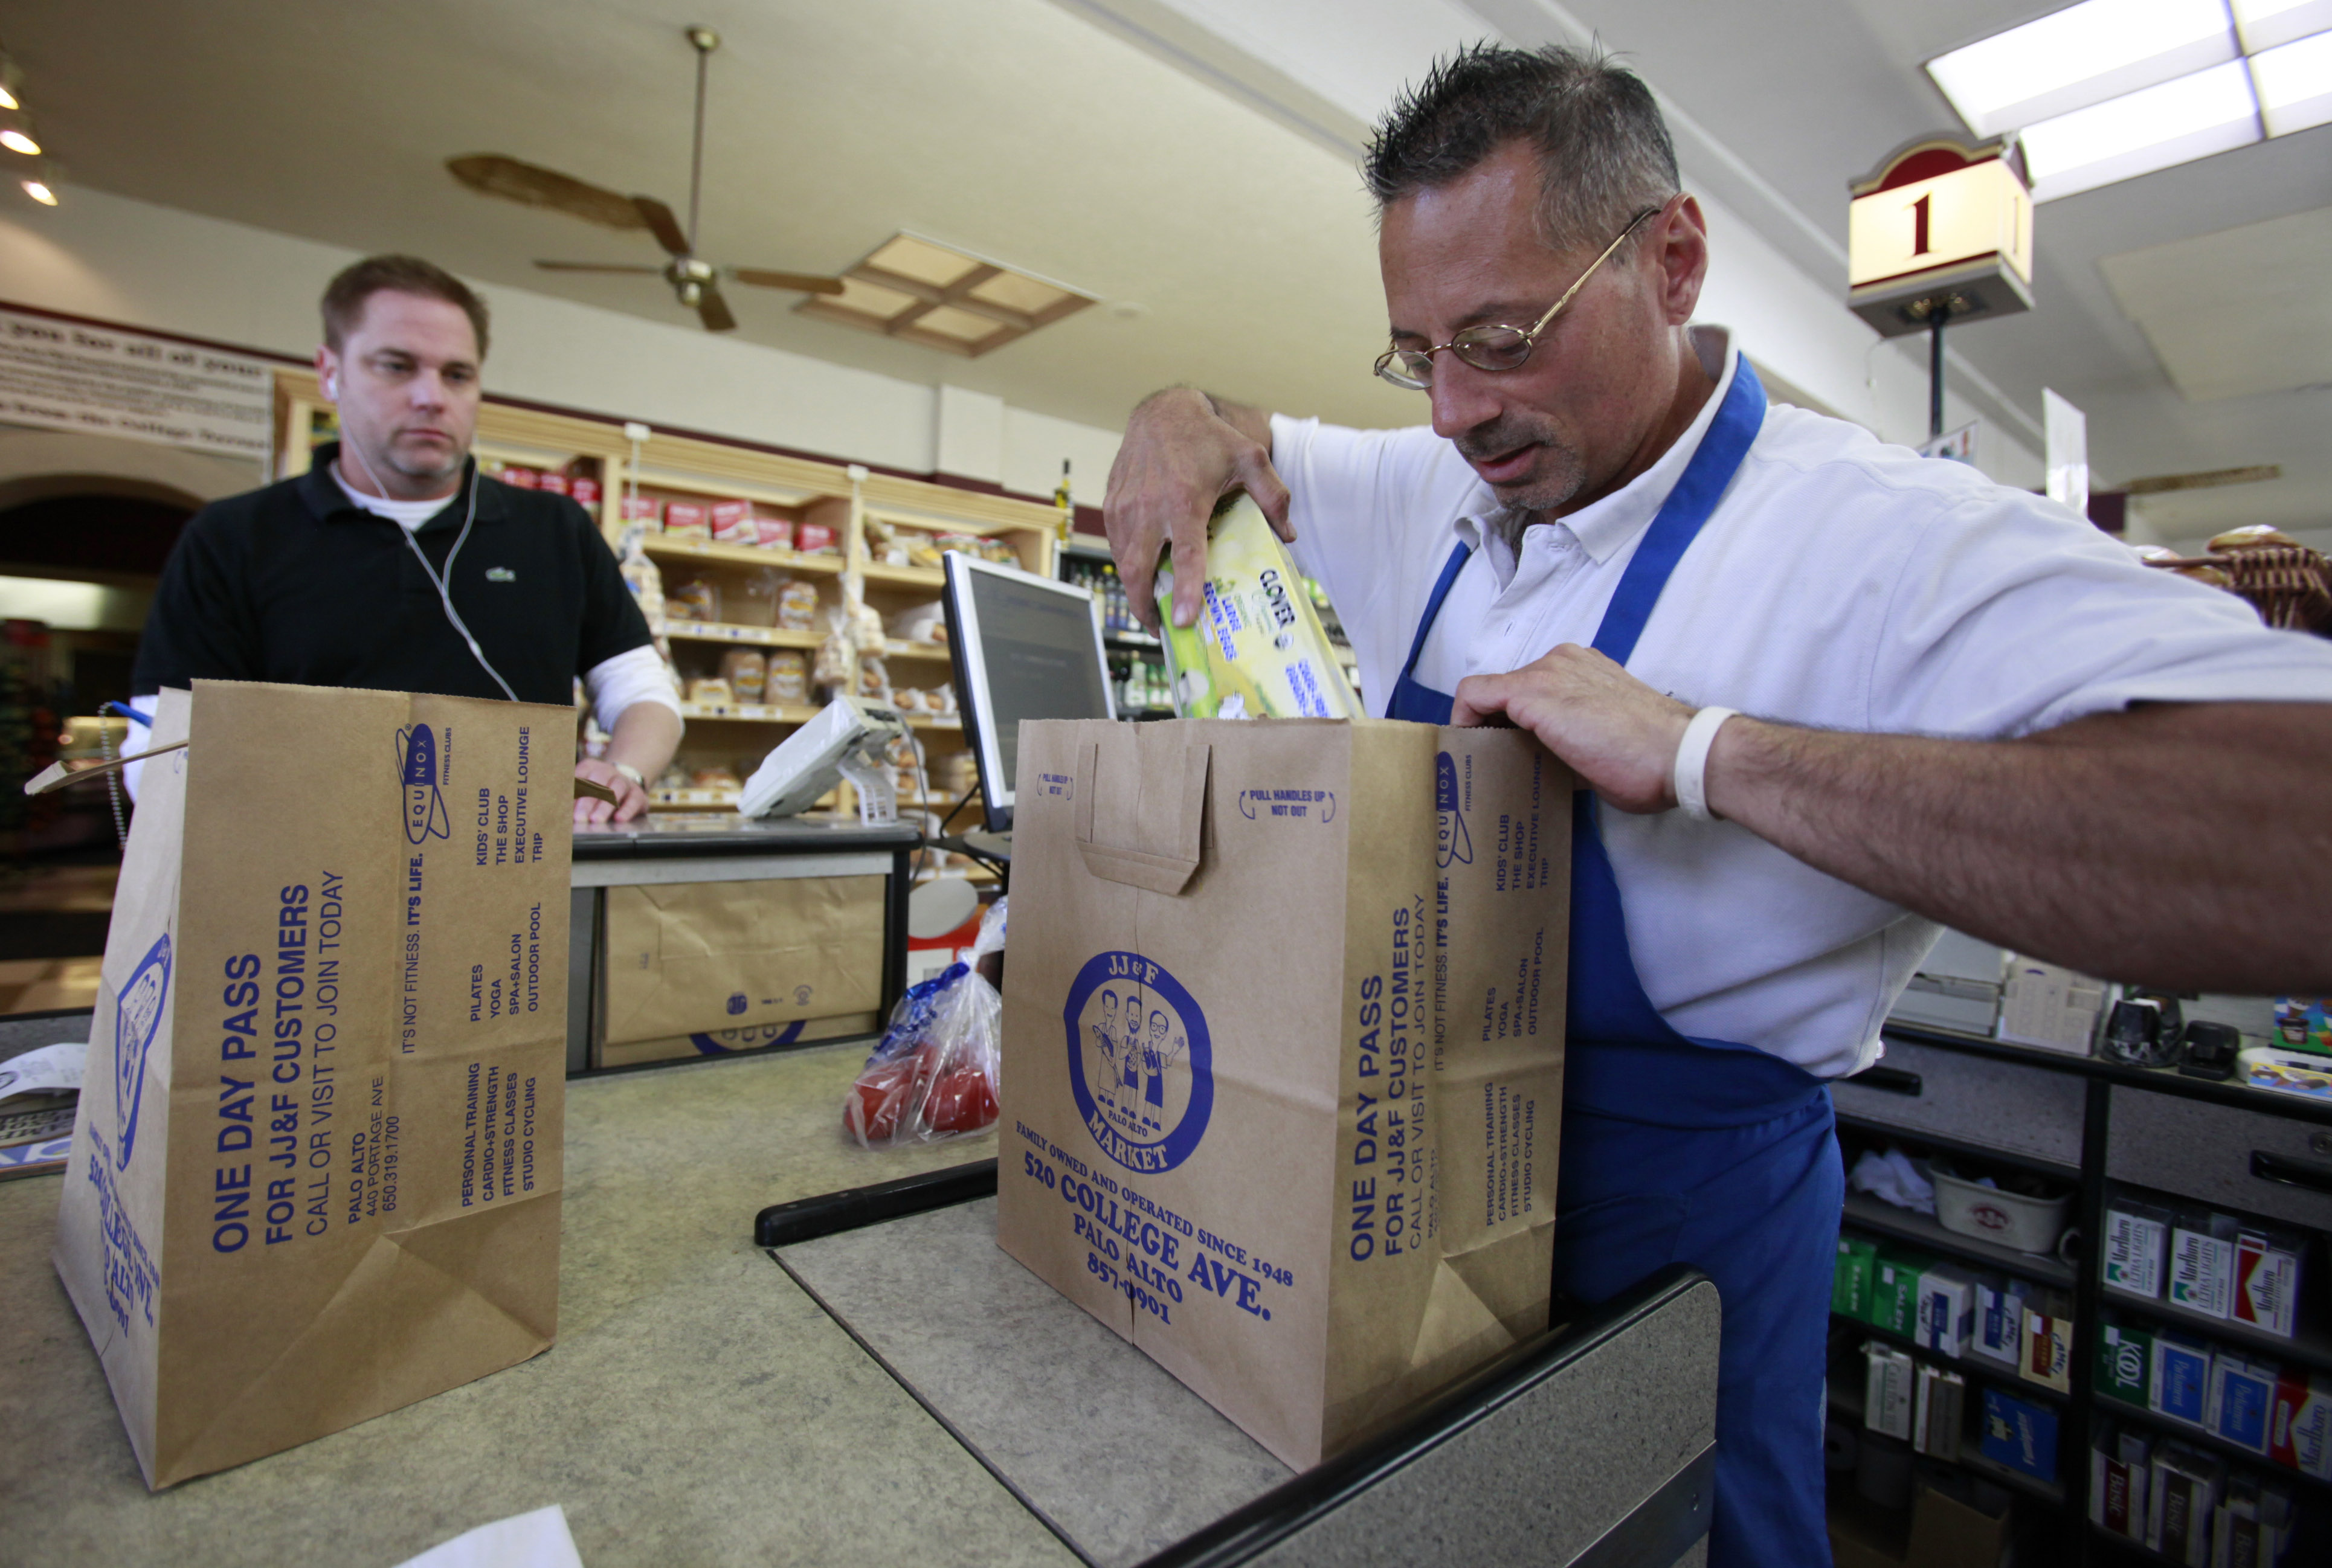 <p>A storeclerk bags groceries in a file photo. The city of Aspen has successfullydefended an ordinance that bans plastic bags and charges customers 20 cents for paper bags. Anti-tax advocates had argued that it ran afoul of the Colorado Taxpayer's Bill of Rights.</p>